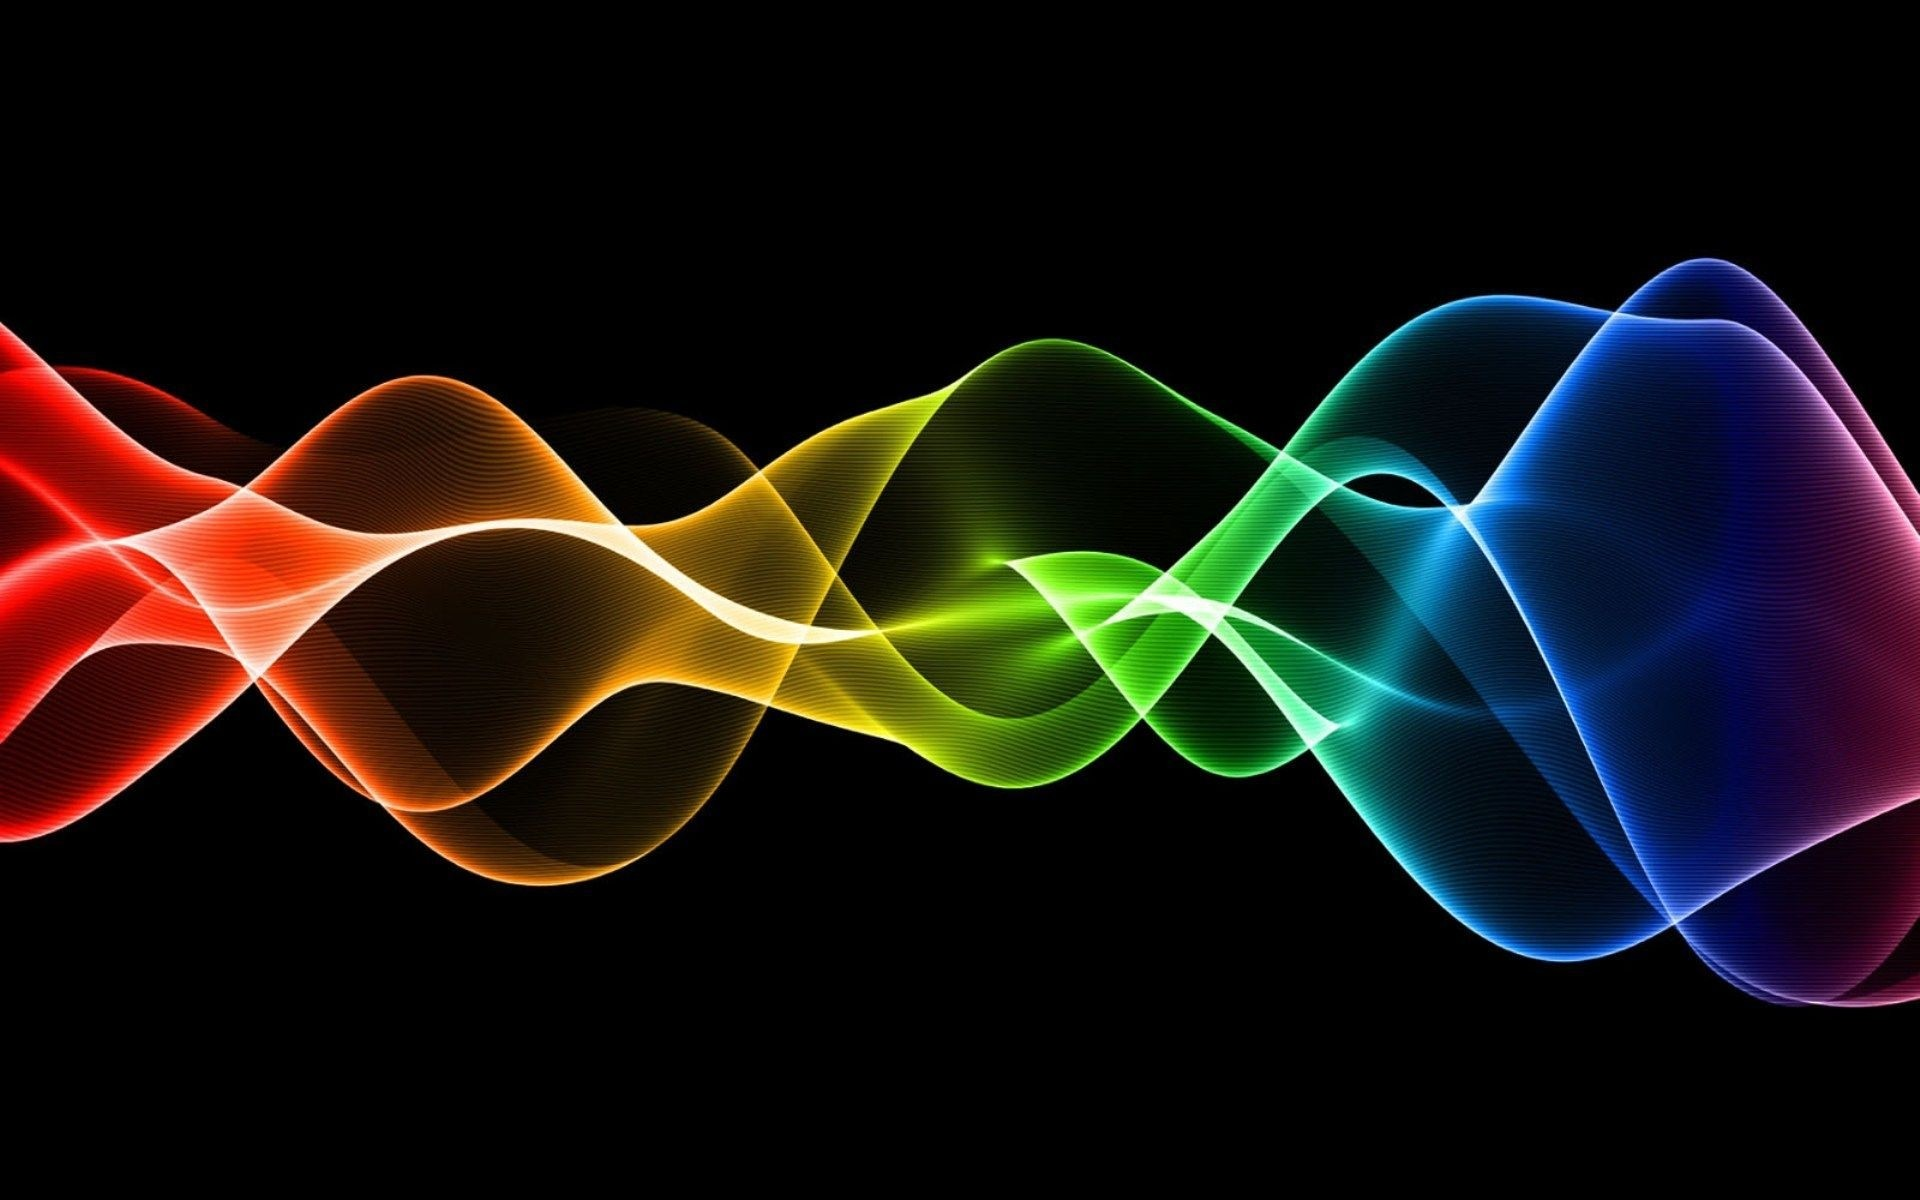 New cool neon background pics – Free cool neon background pics Download  Download New cool neon